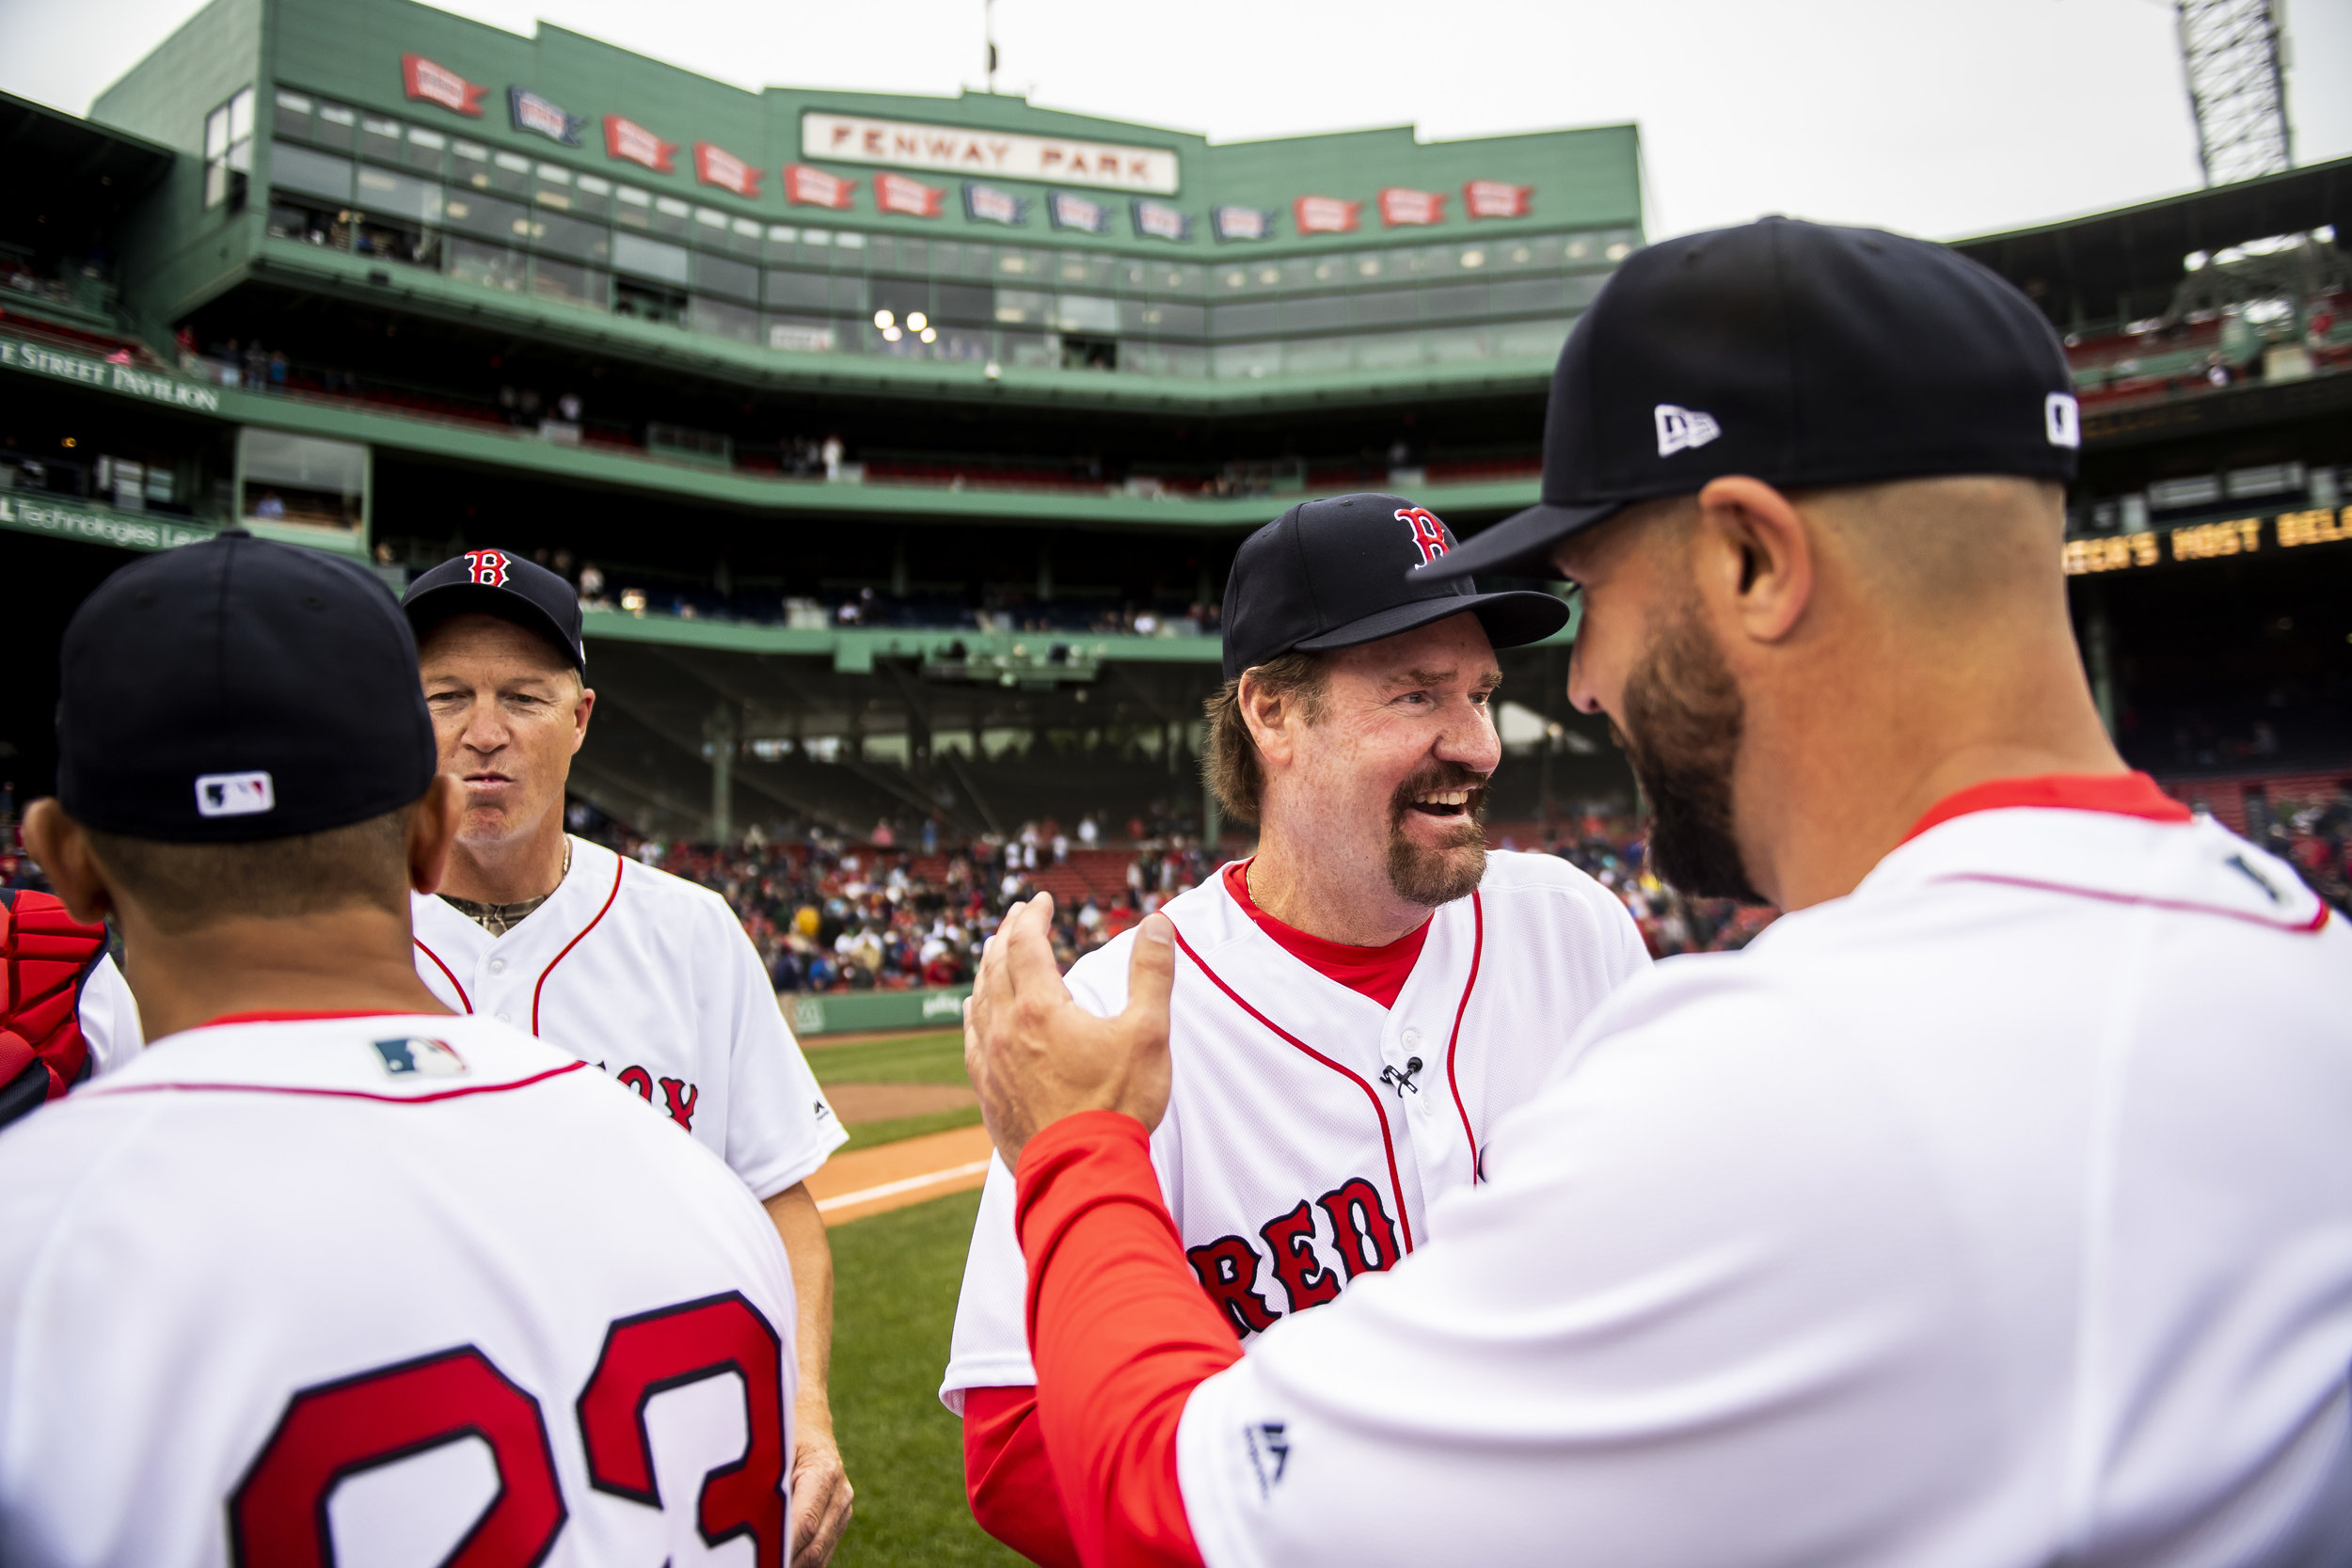 May 27, 2018, Boston, MA: Wade Boggs high fives his teammates after the Red Sox Alumni Game at Fenway Park in Boston, Massachusetts on Sunday, May 27, 2018. (Photo by Matthew Thomas/Boston Red Sox)